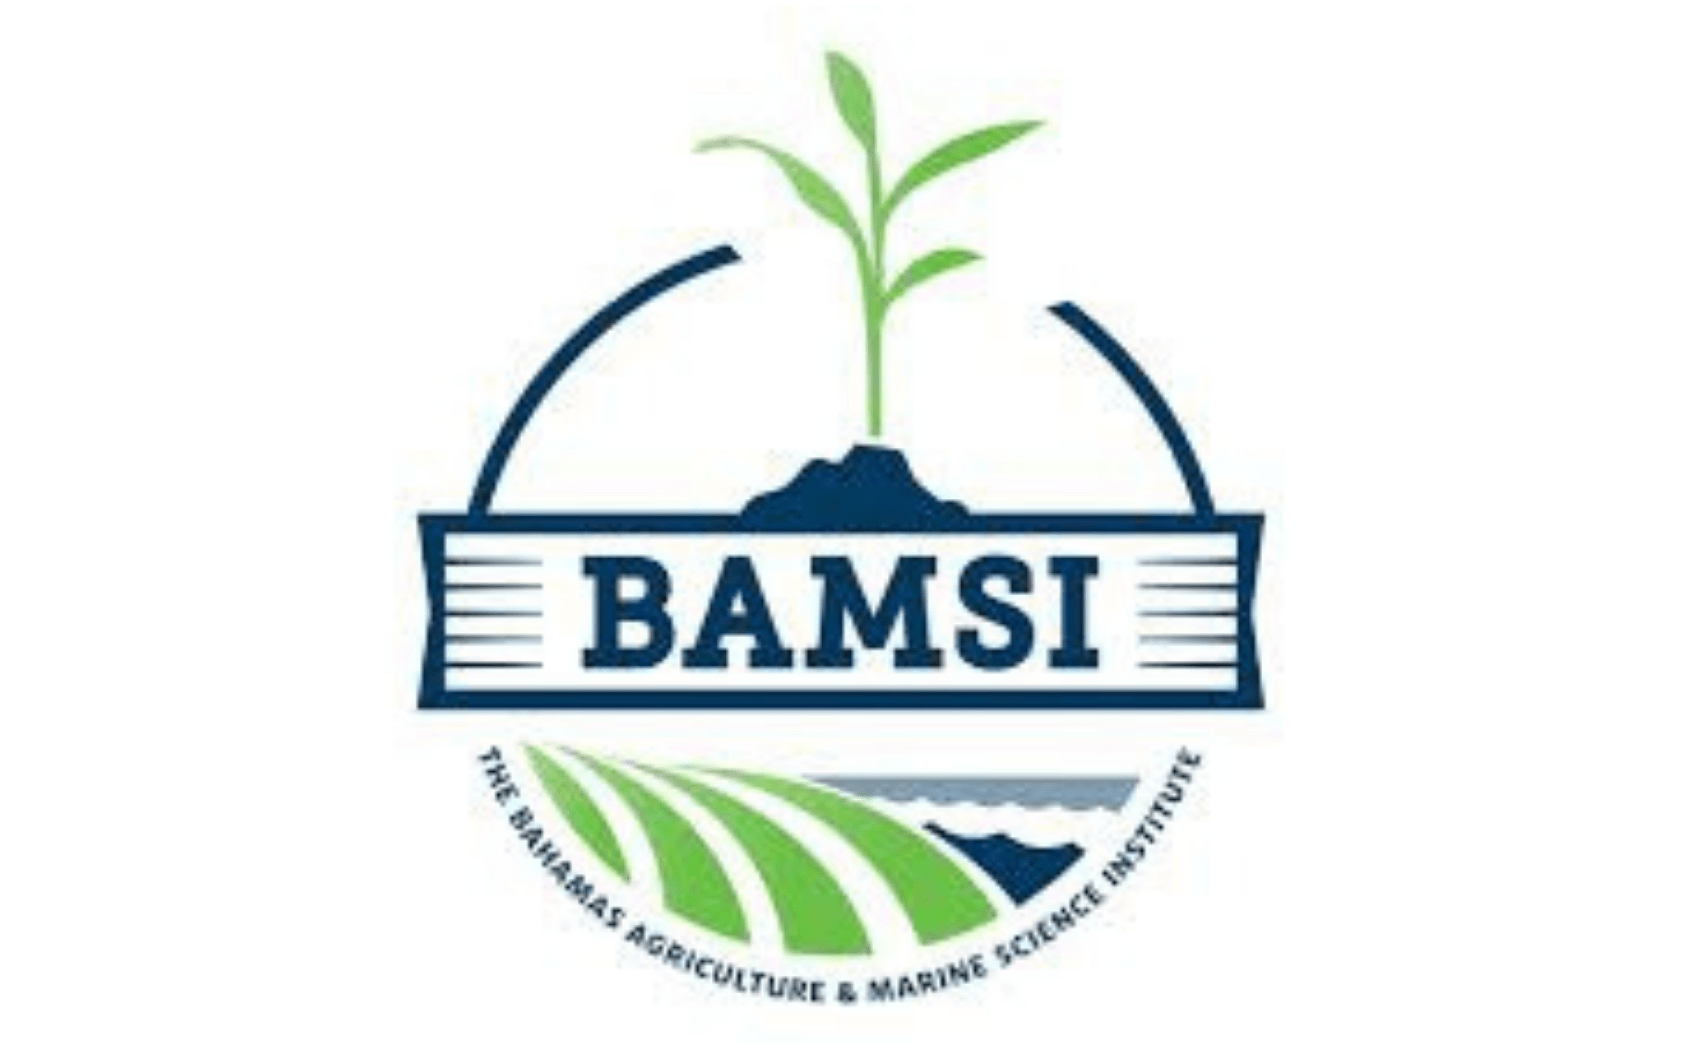 BAMSI expands educational offering with distance learning